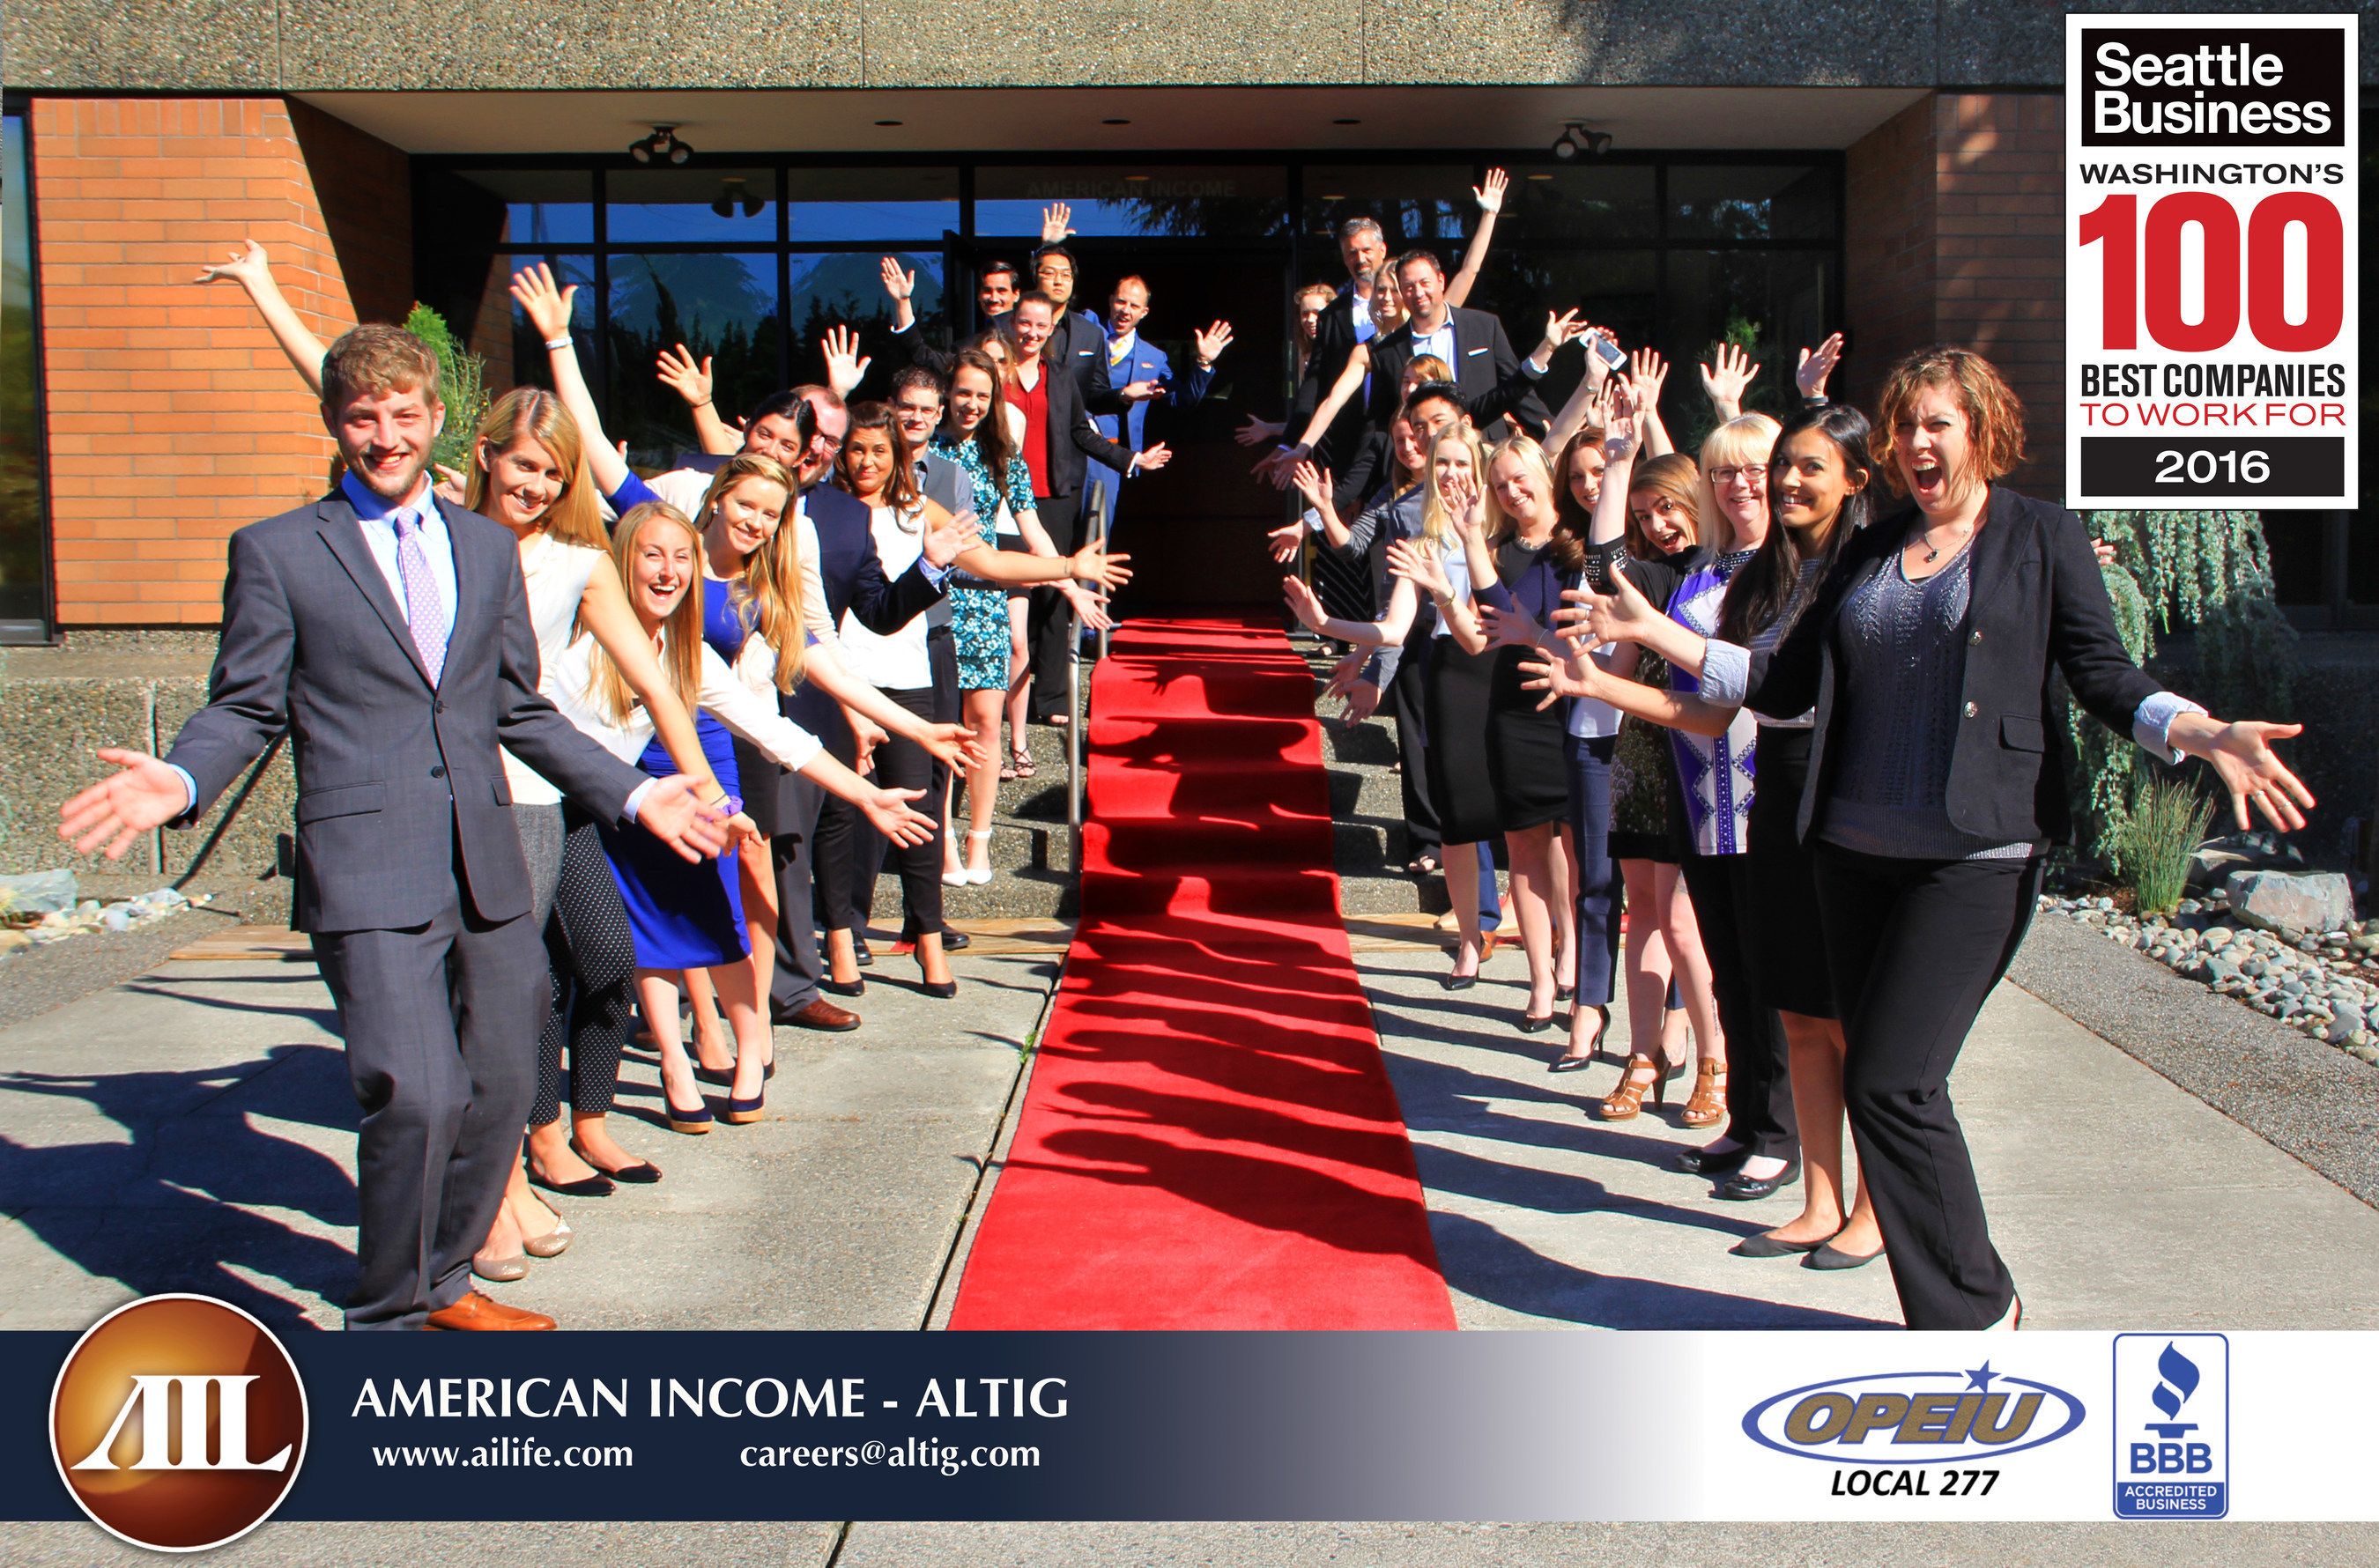 American Income-Altig Named #2 Best Place to Work for in 2016 by Seattle Business Magazine